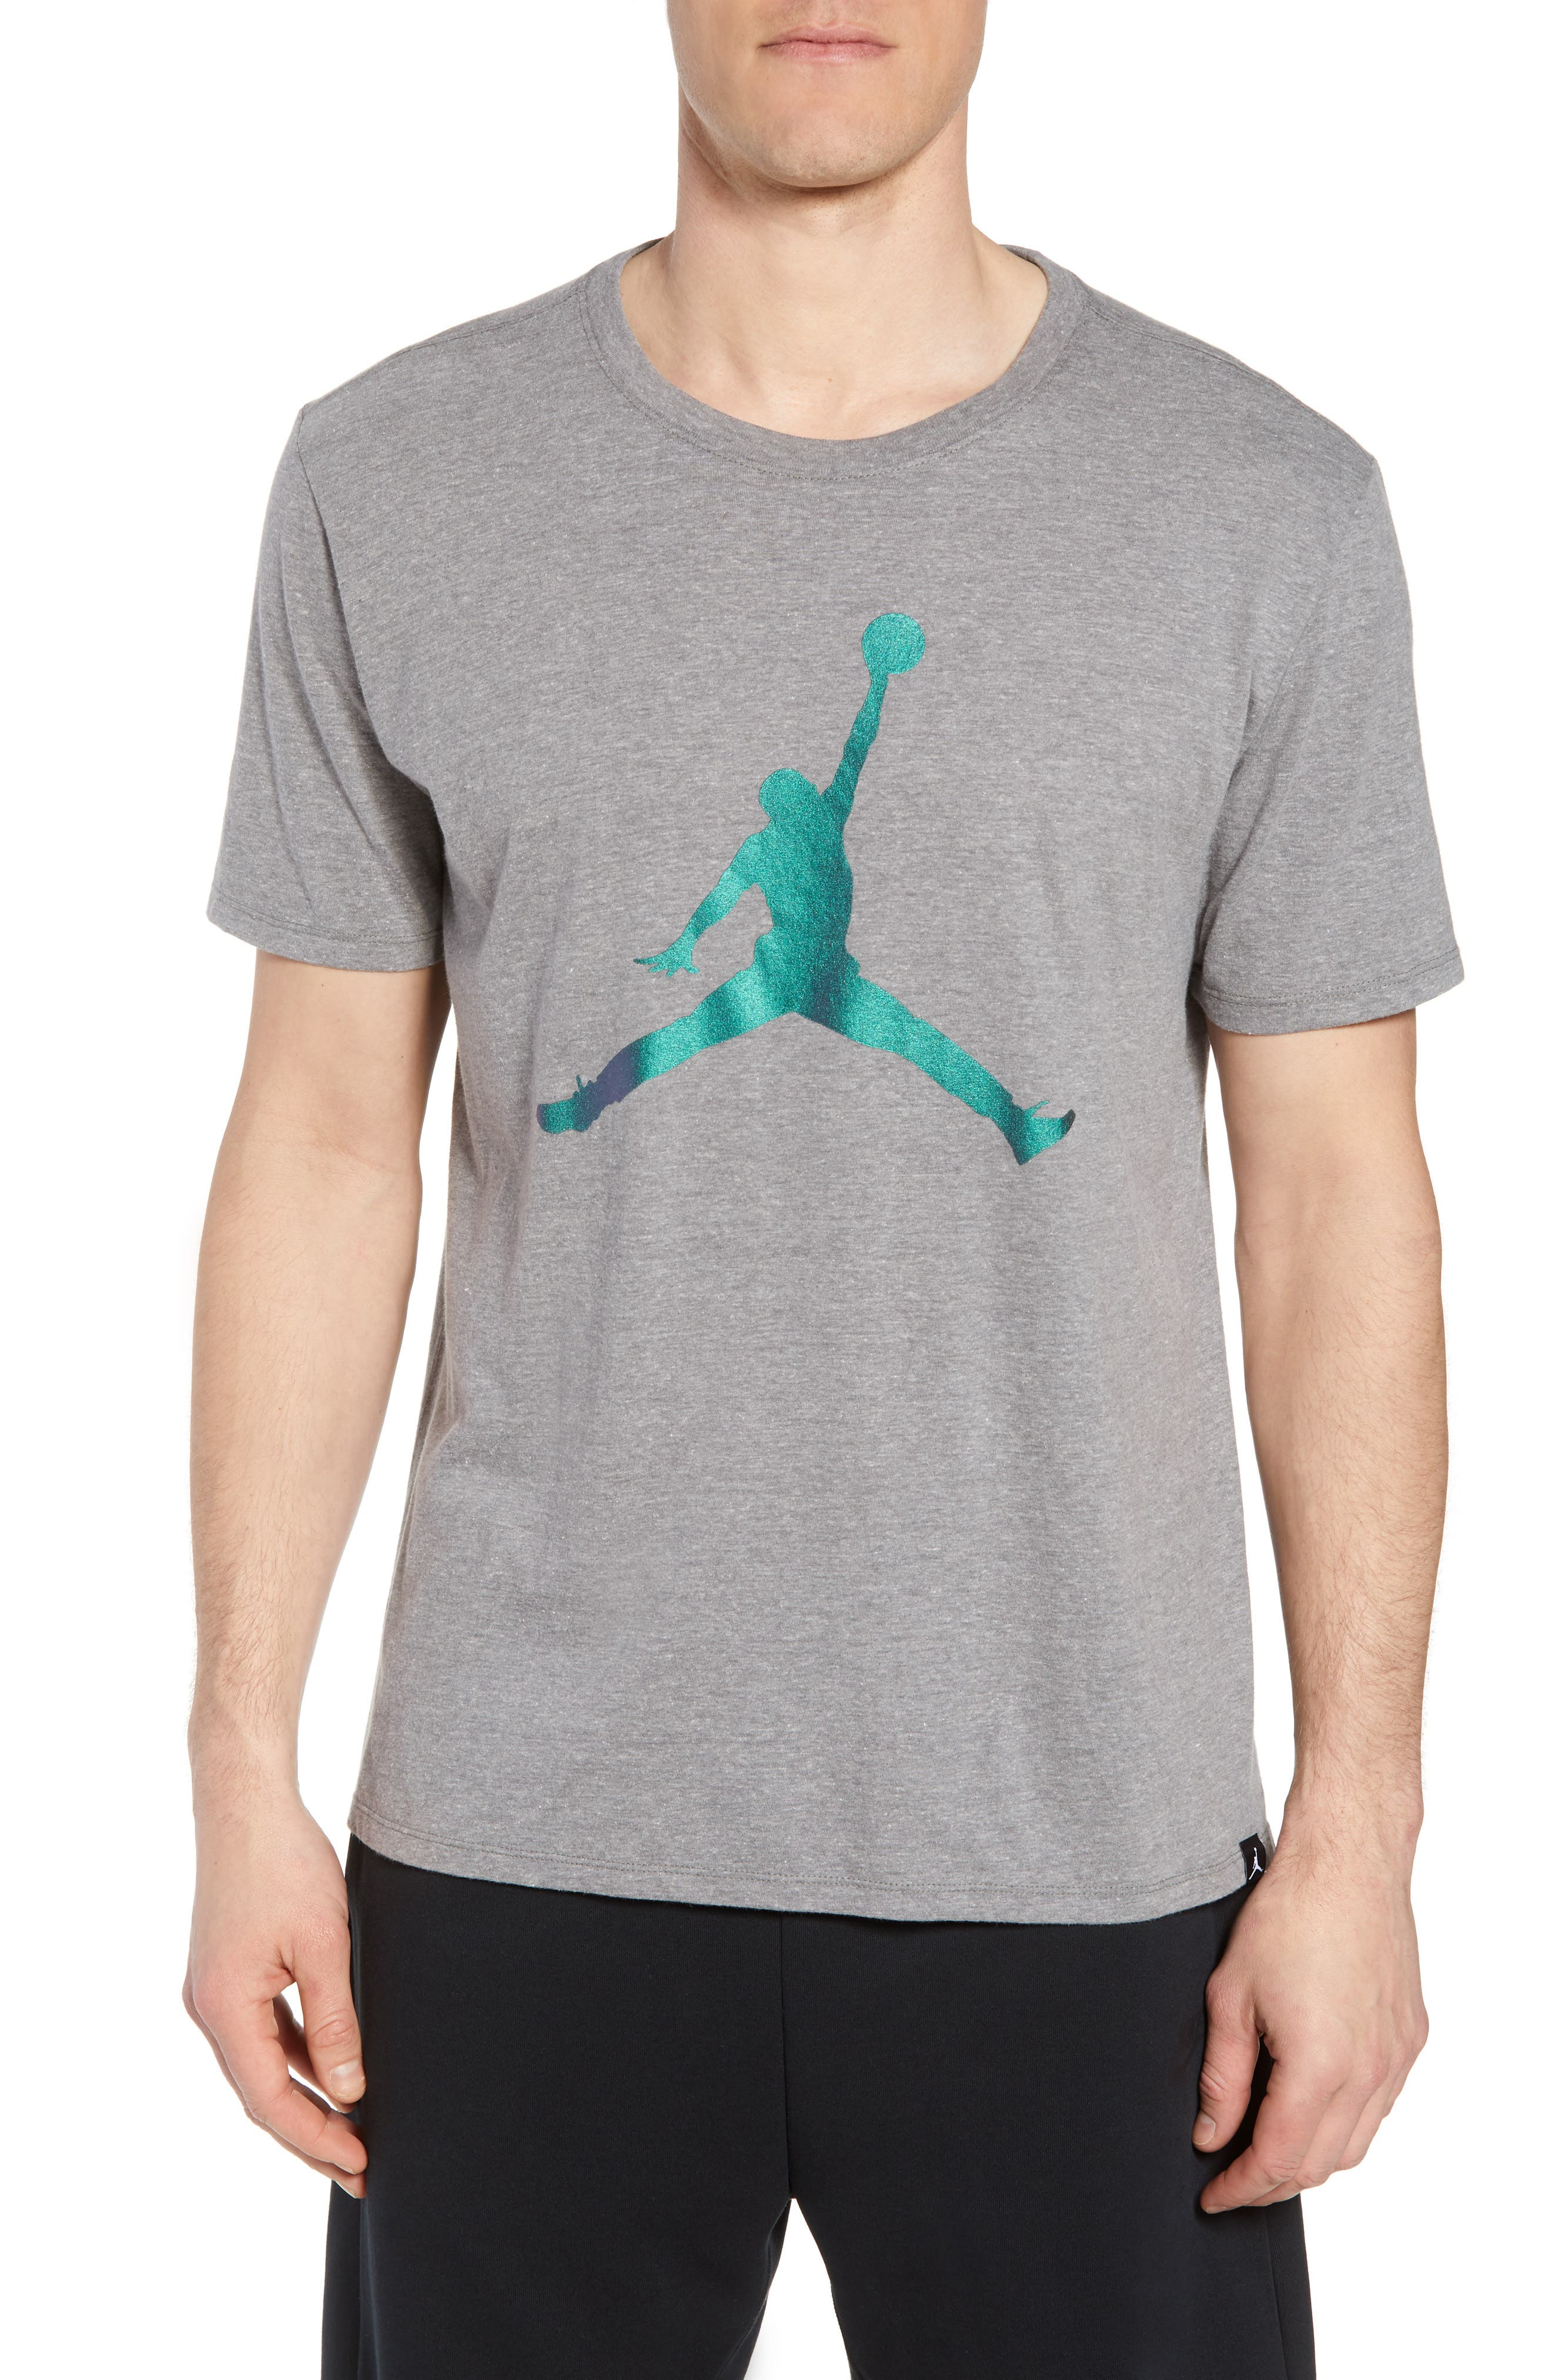 Nike Jumpman Tee,                         Main,                         color, CARBON HEATHER